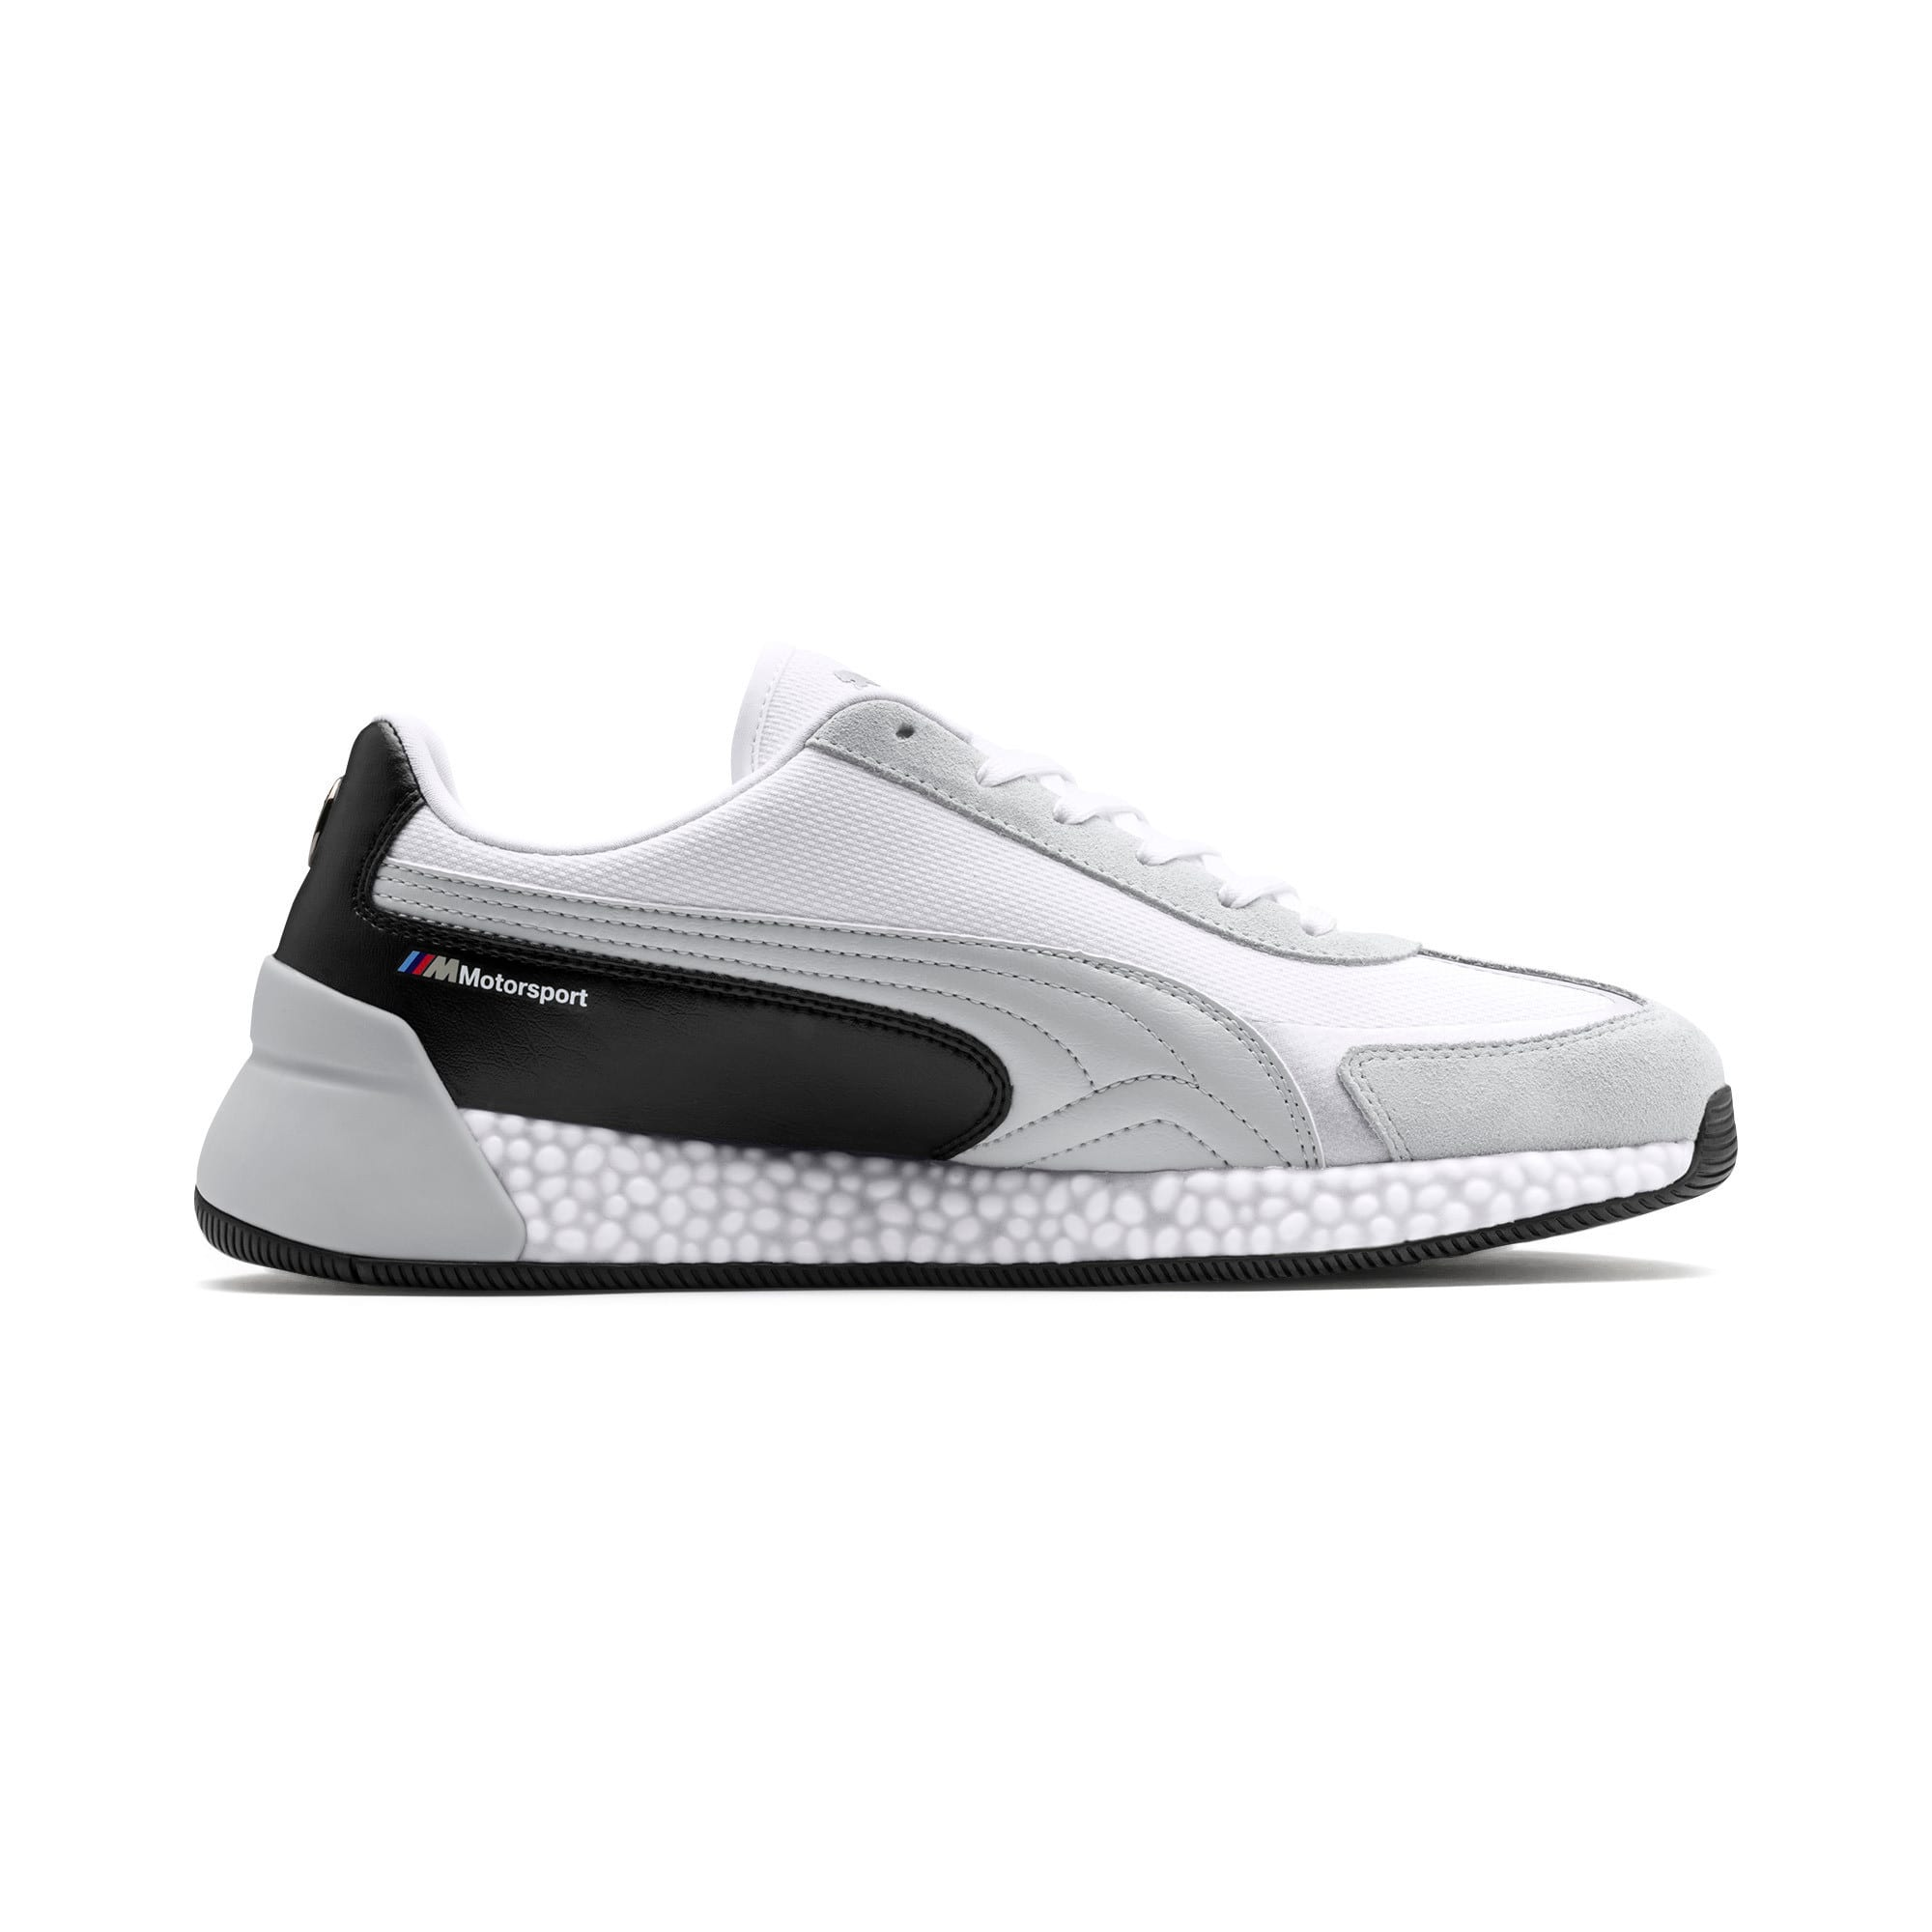 Thumbnail 6 of BMW M Motorsport Speed HYBRID Sneaker, White-Glacier Gray-Black, medium